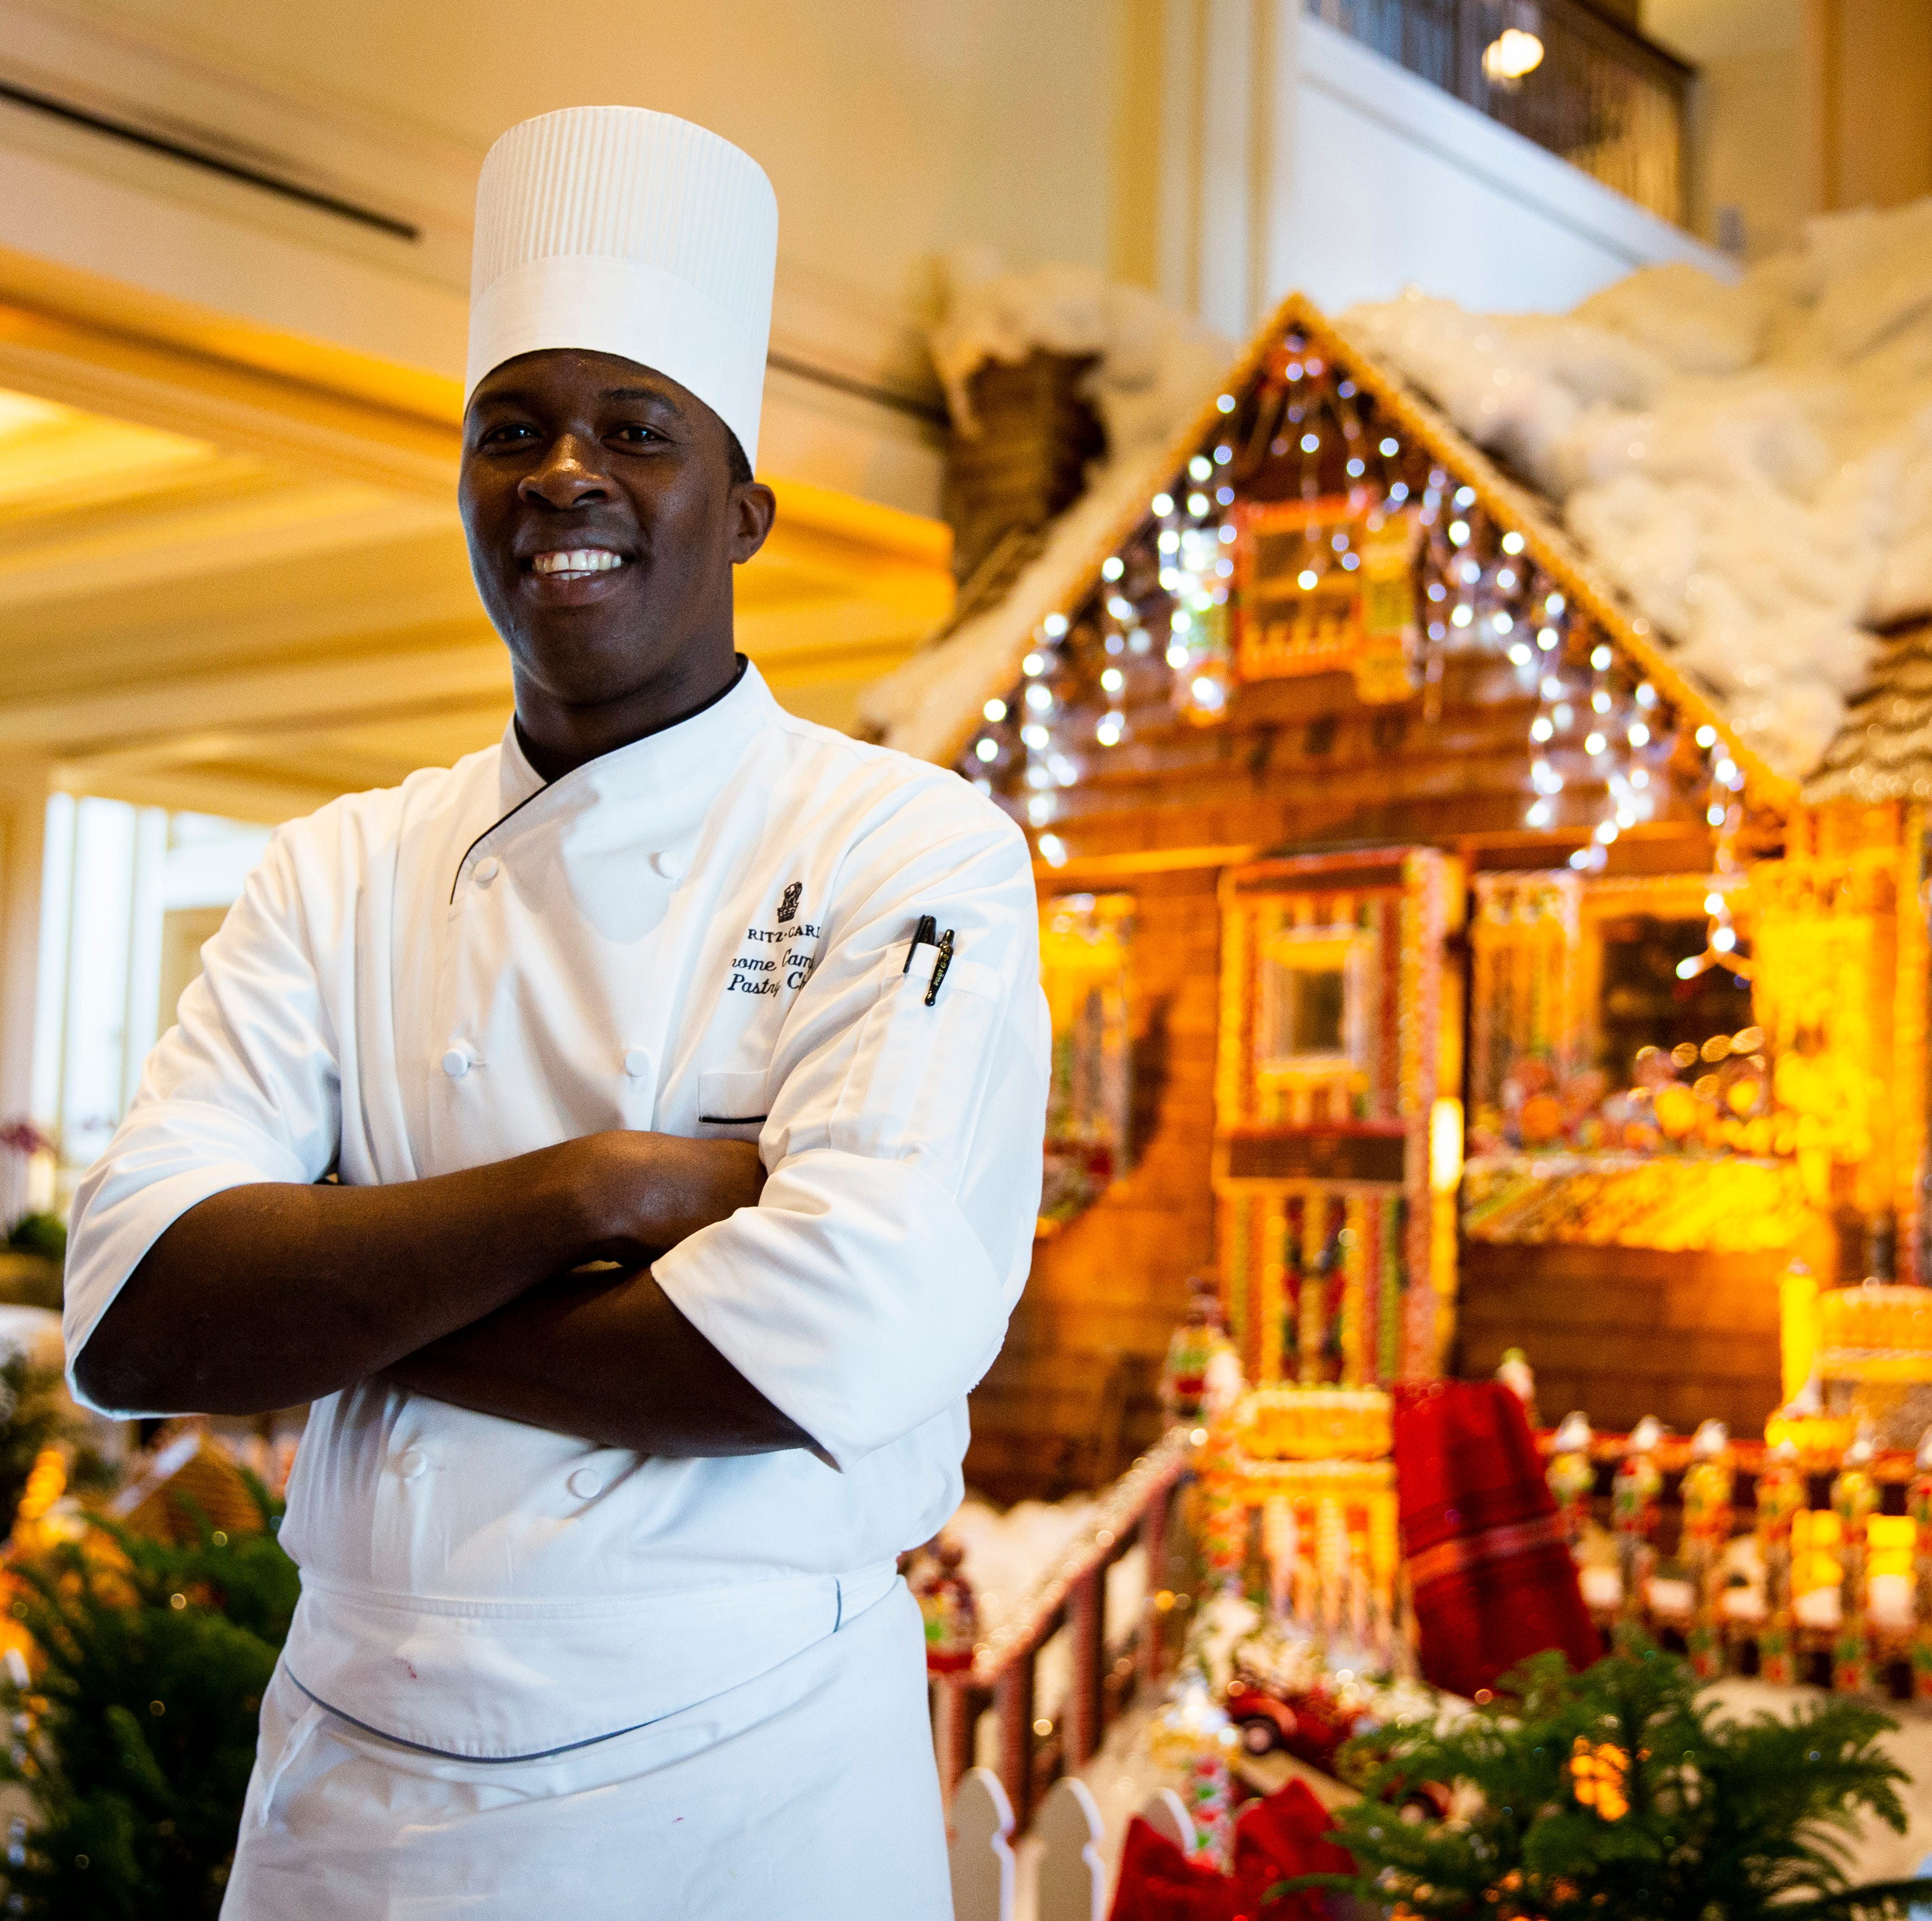 Naples pastry chef advances on Food Network's holiday baking competition